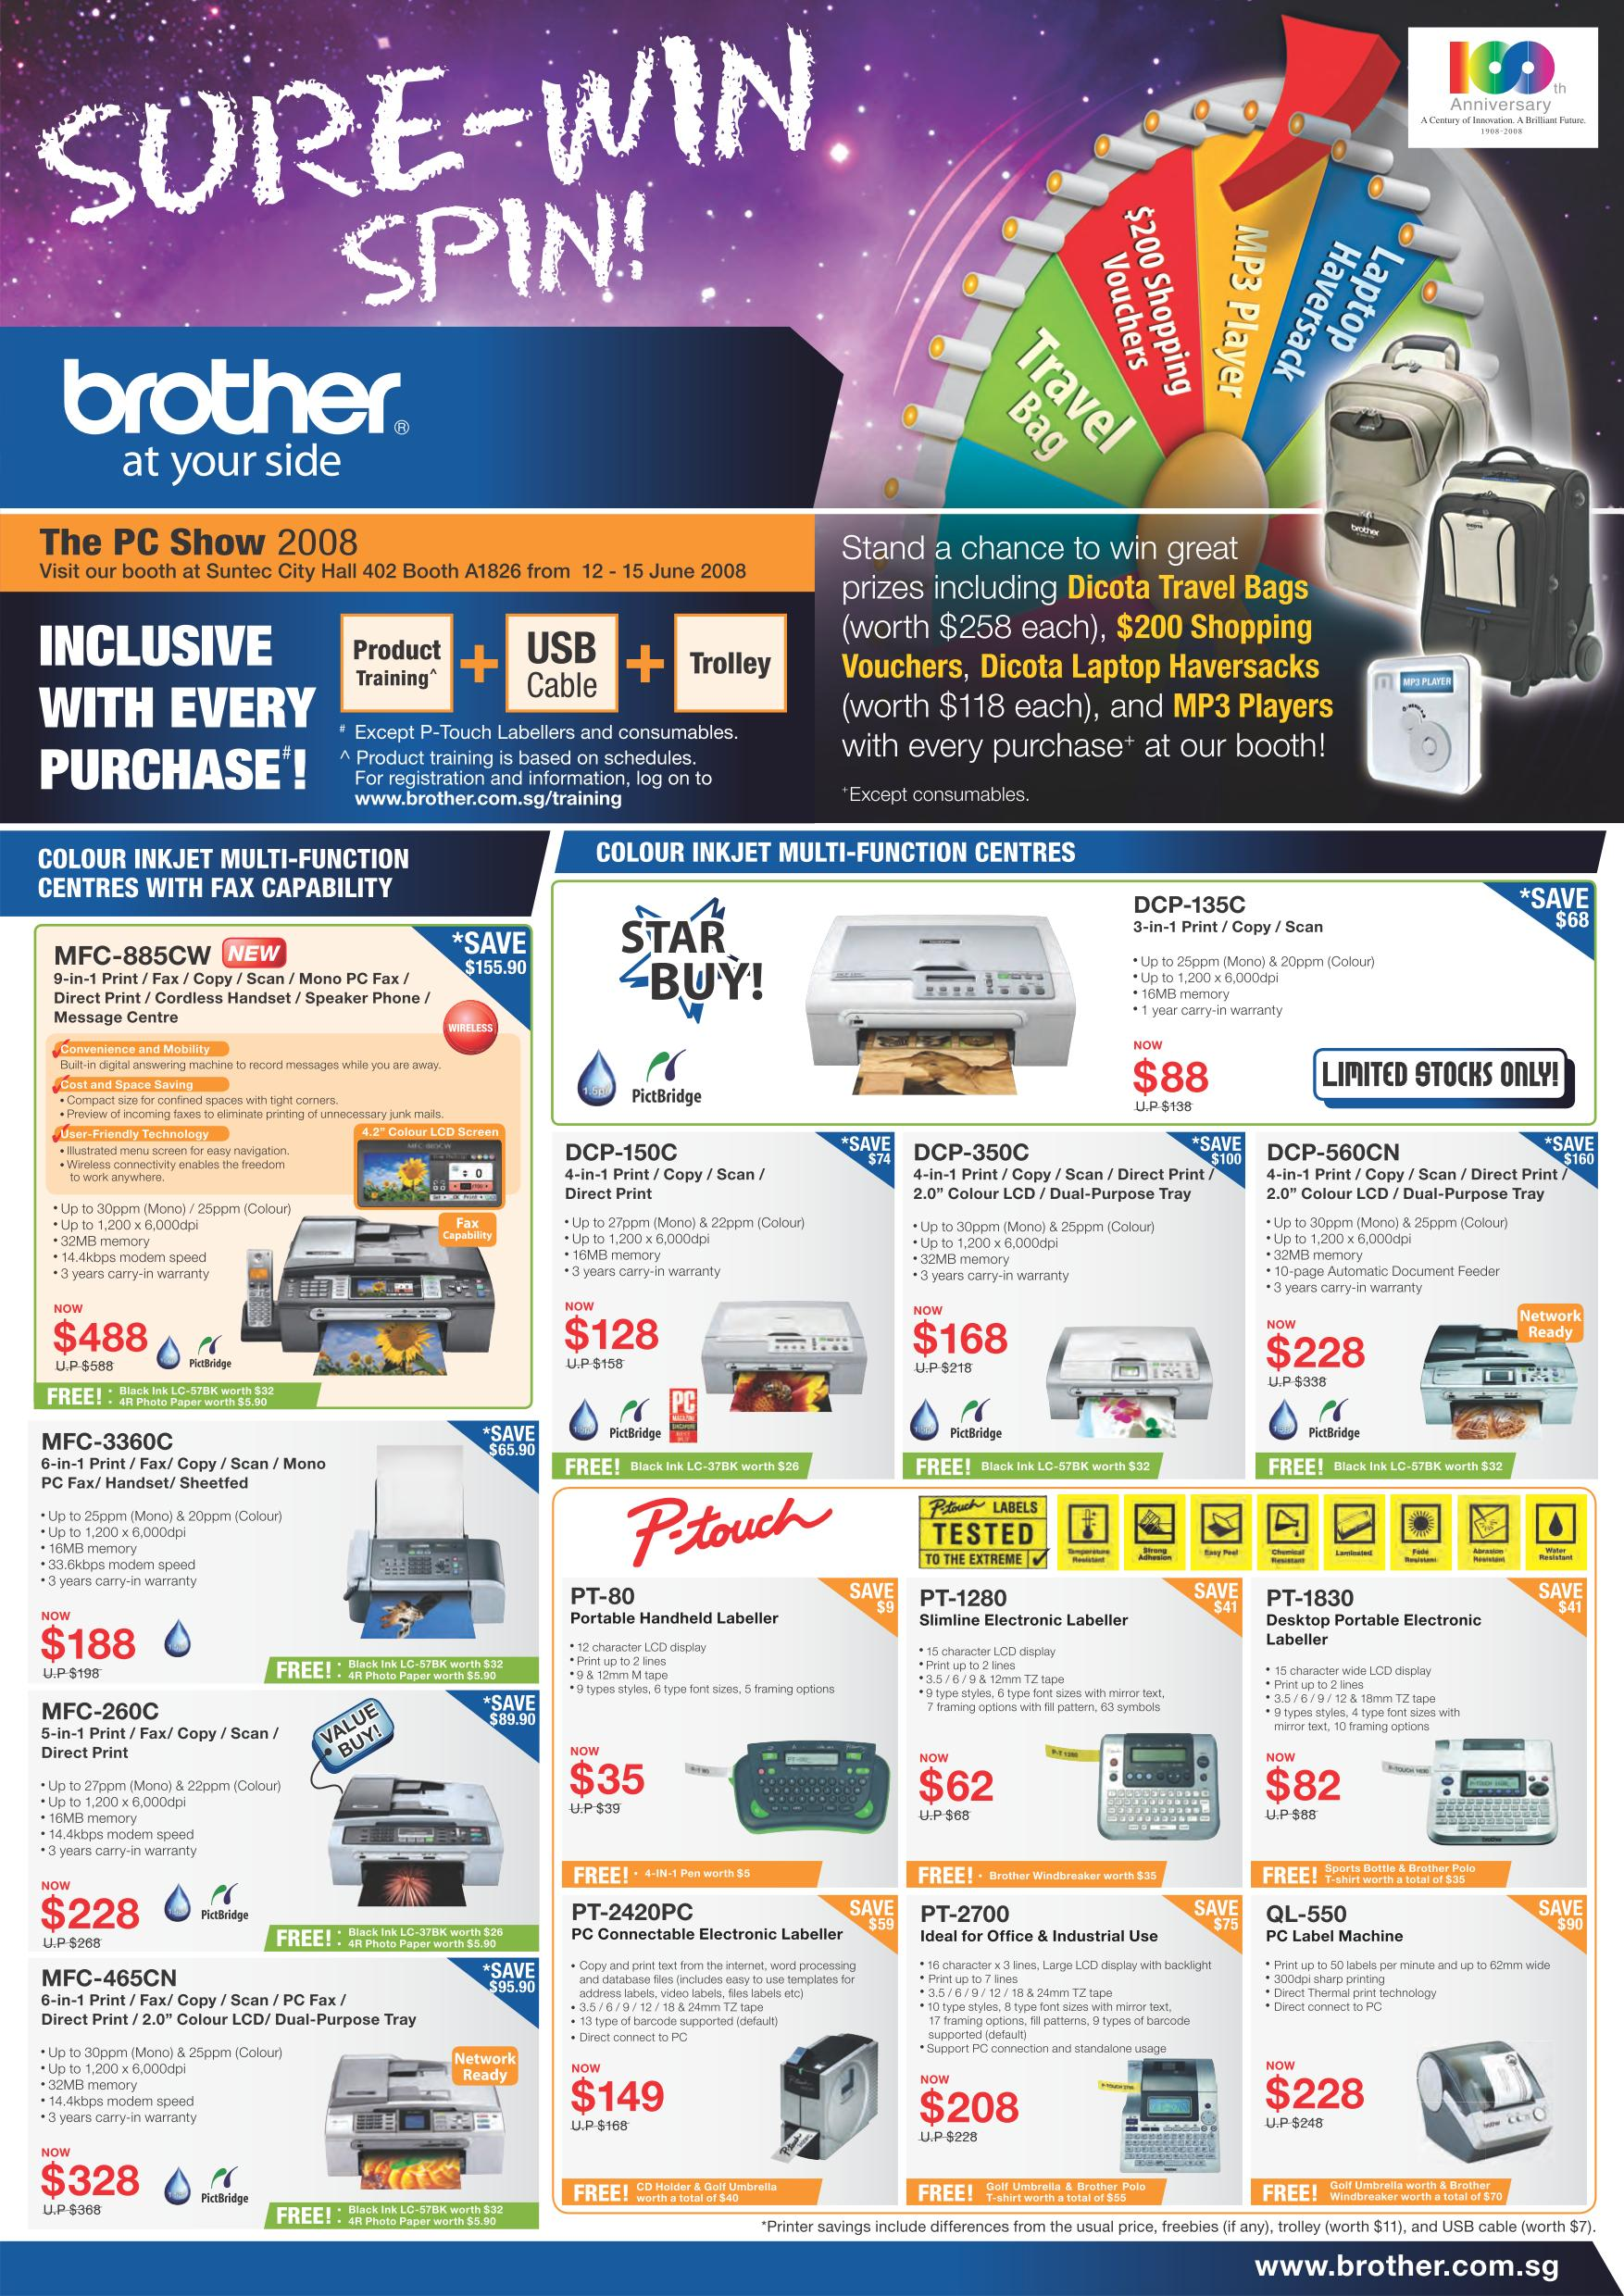 PC Show 2008 price list image brochure of Brother Printers Show.pdf 01